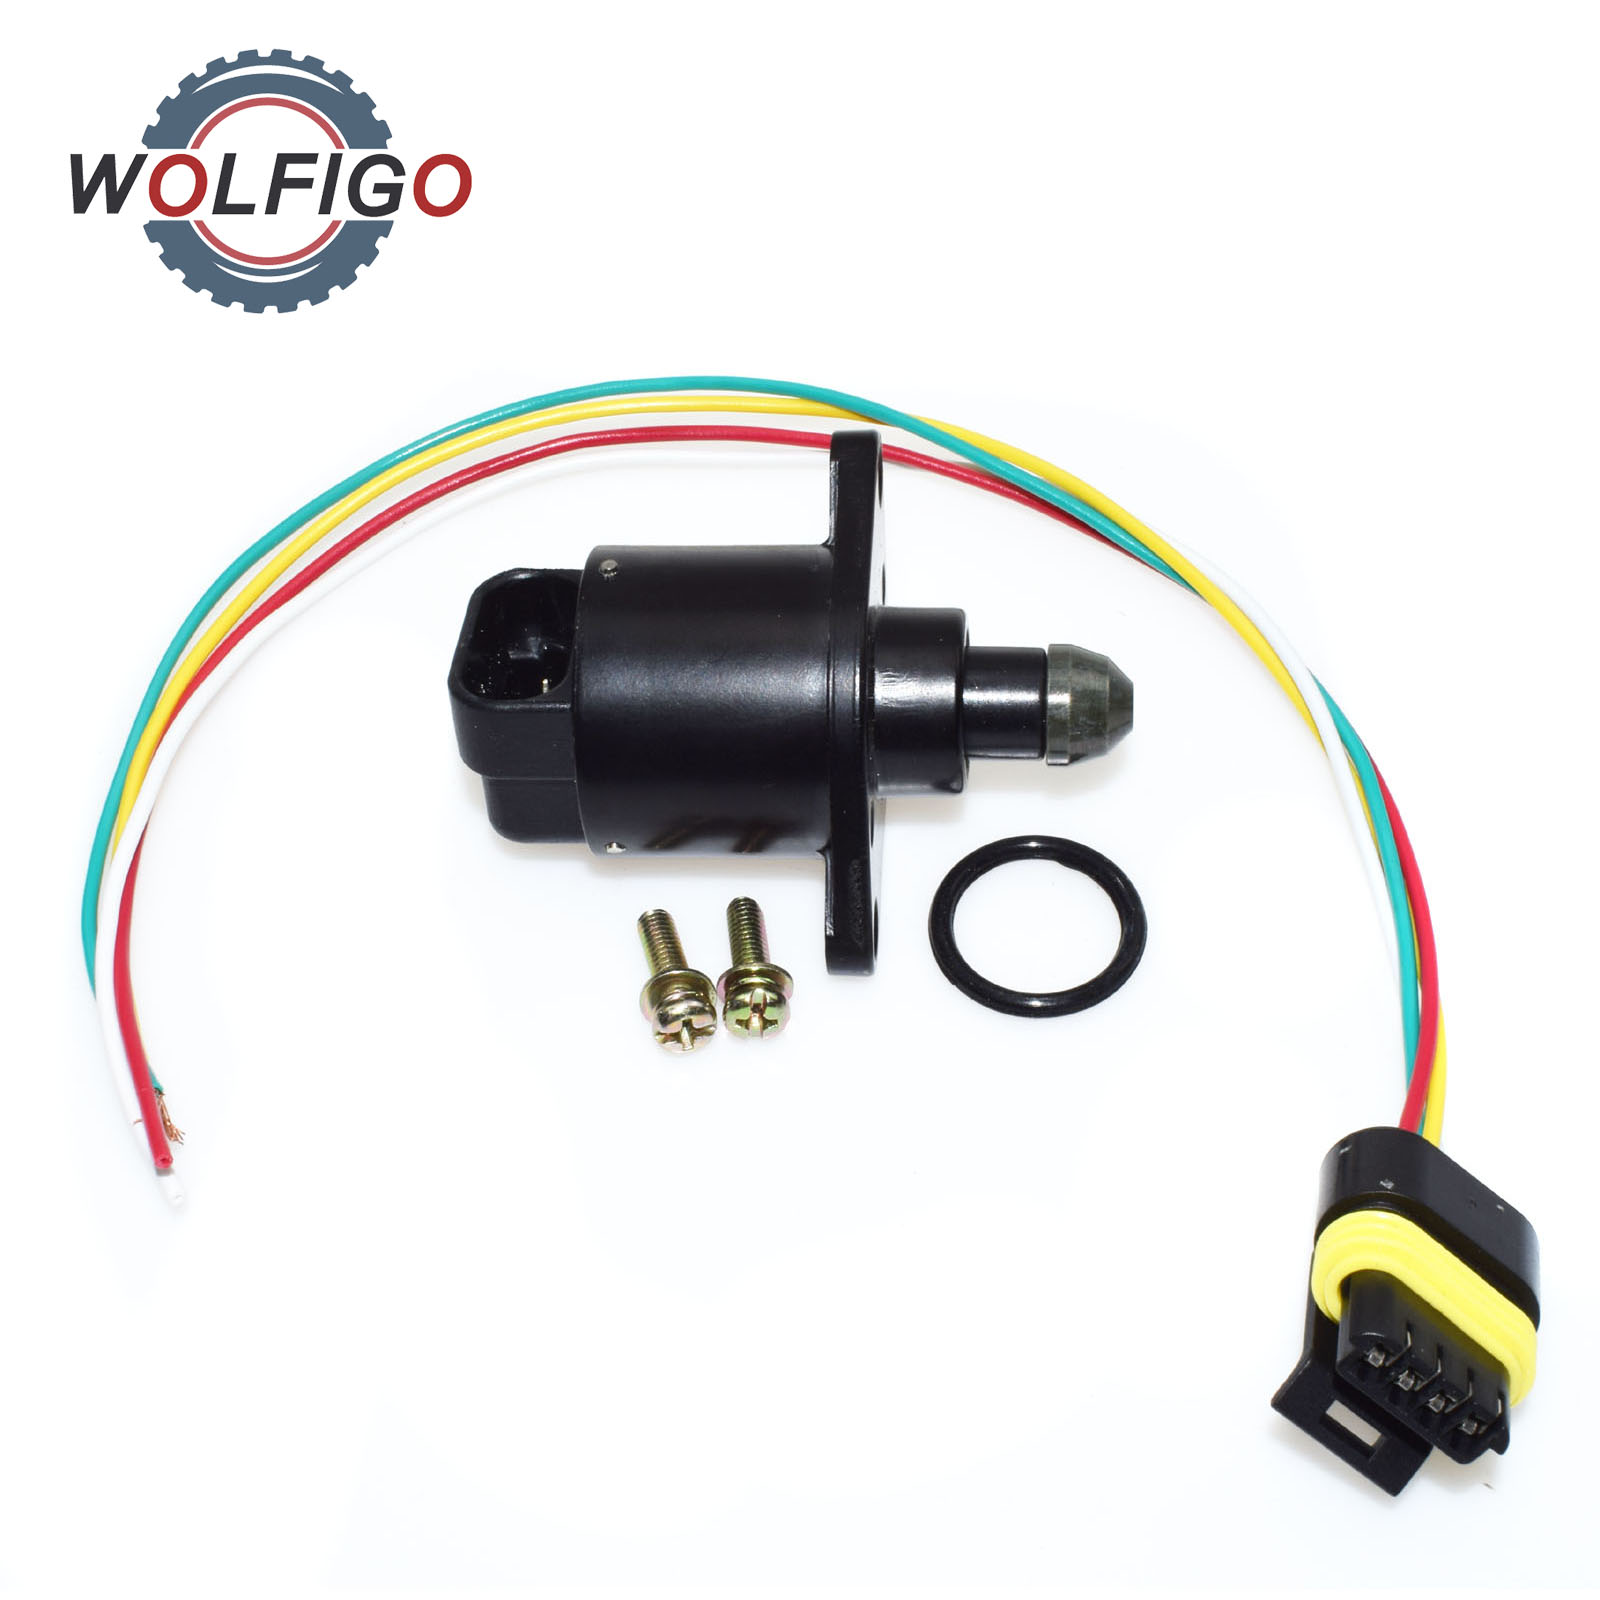 Wolfigo Idle Air Control Valve With Pigtail Harness Connector For Citroen Xantia Zx Peugeot 106